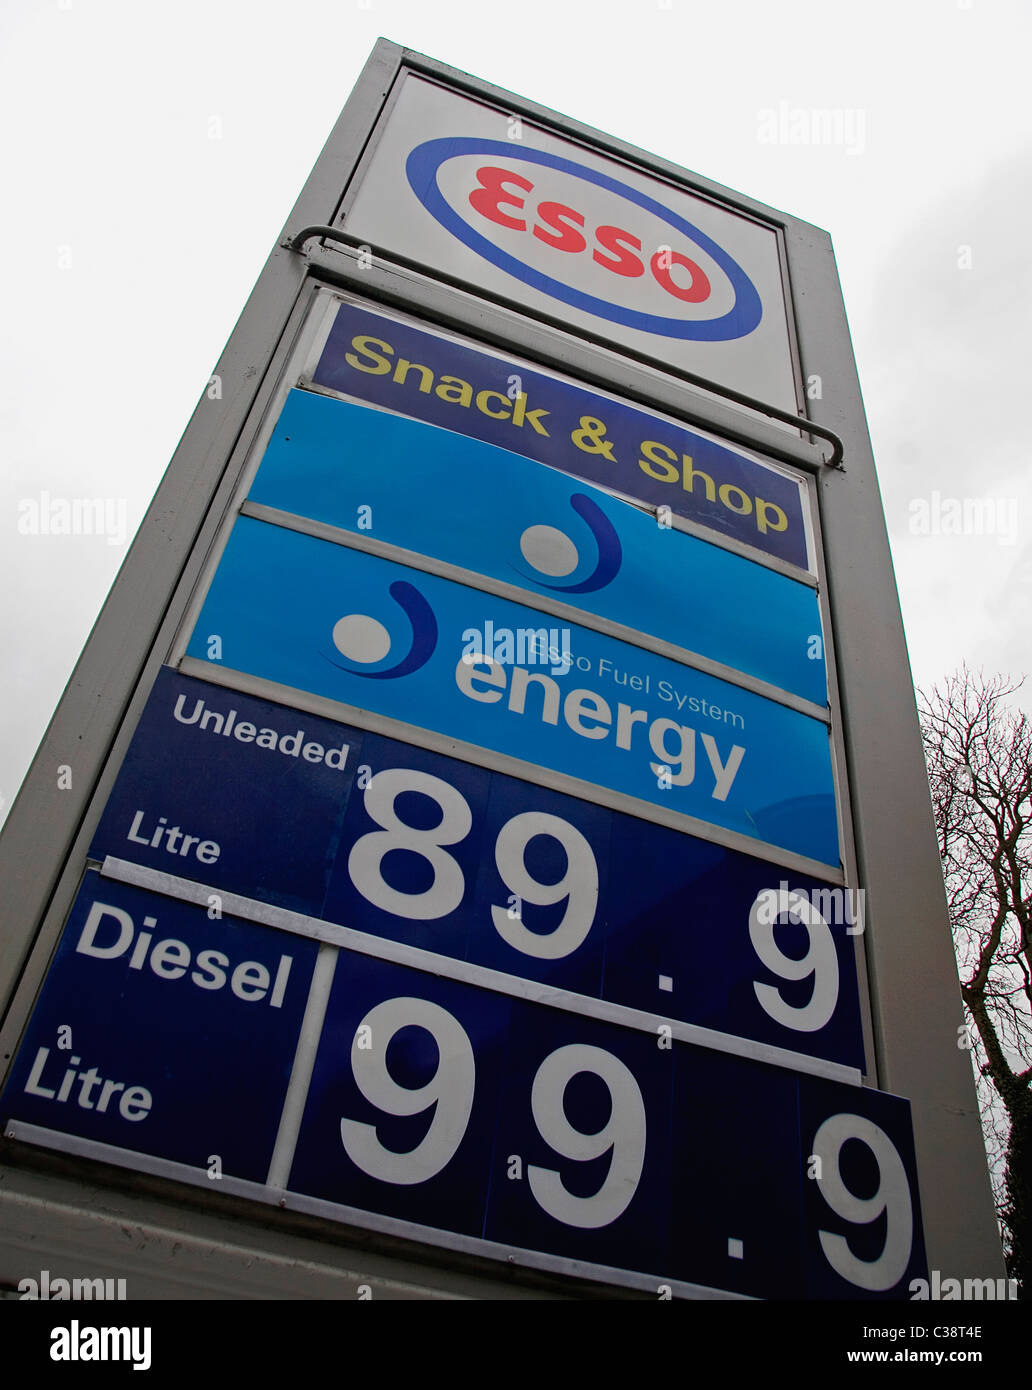 An Esso Service Station, Cambridge. - Stock Image